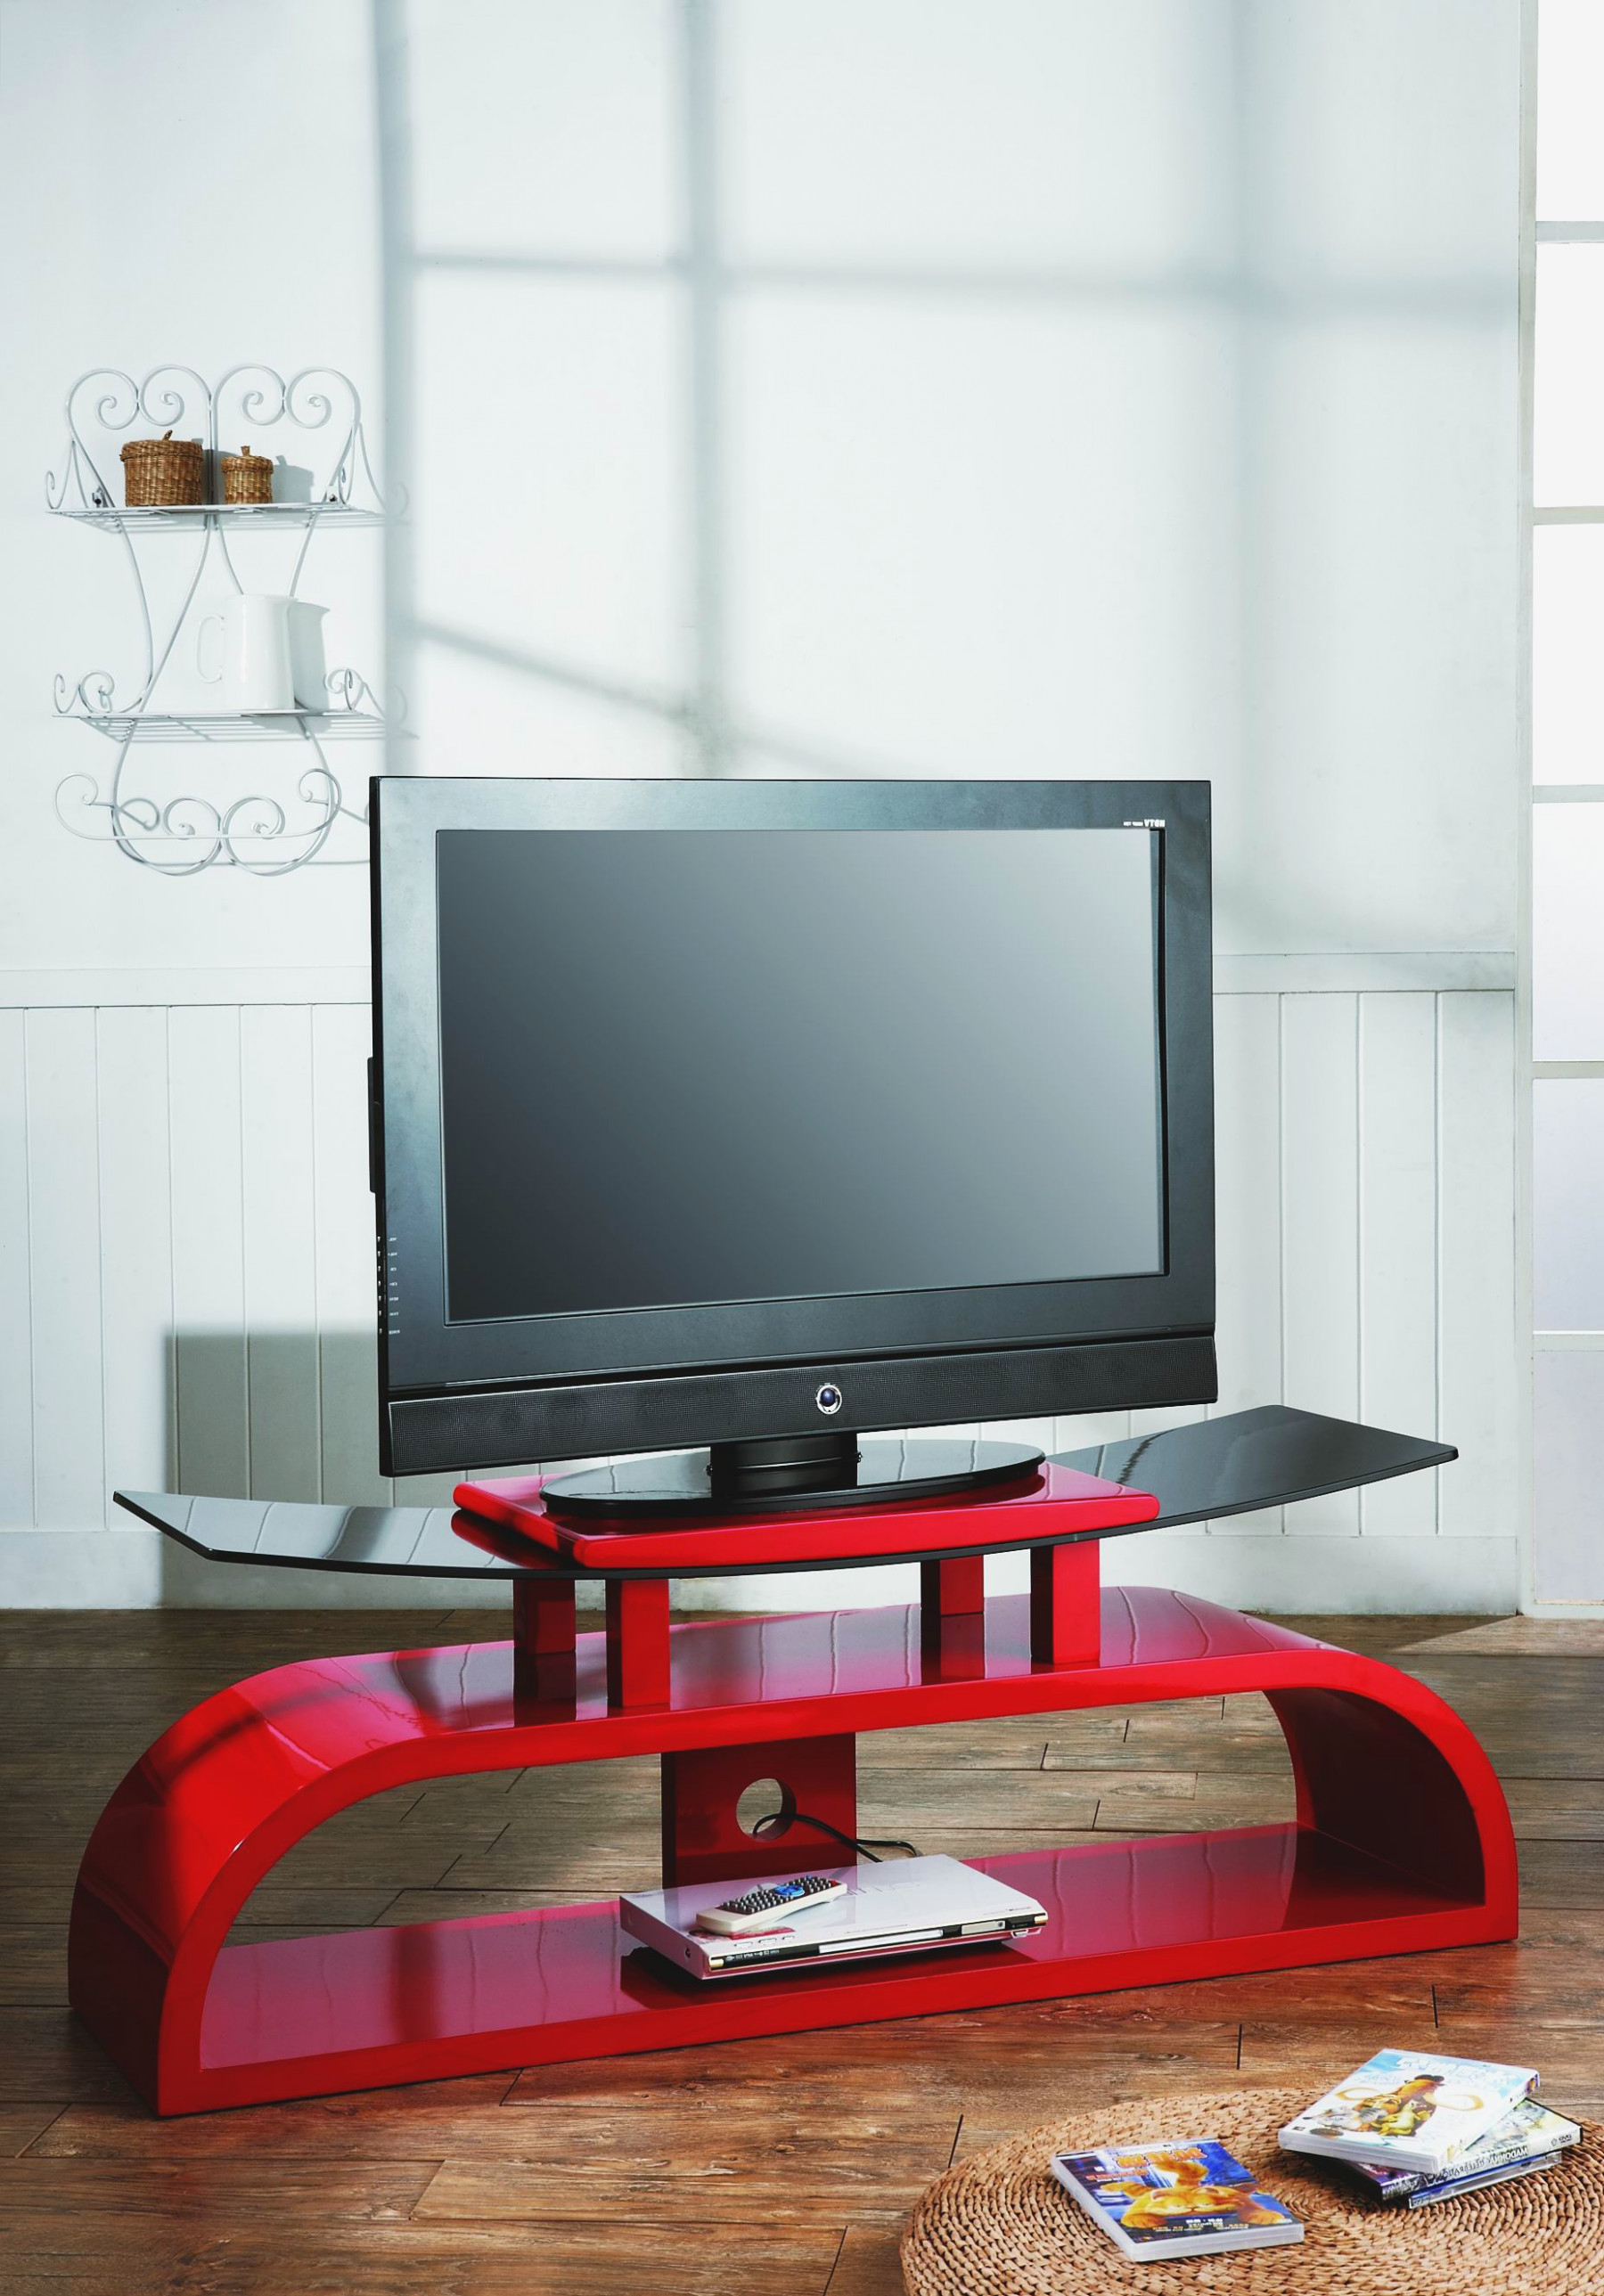 Well Liked Red Tv Stands In Tv Stand Metal Design Nova Domus Mamodern Red Stands Remarkable With (View 20 of 20)